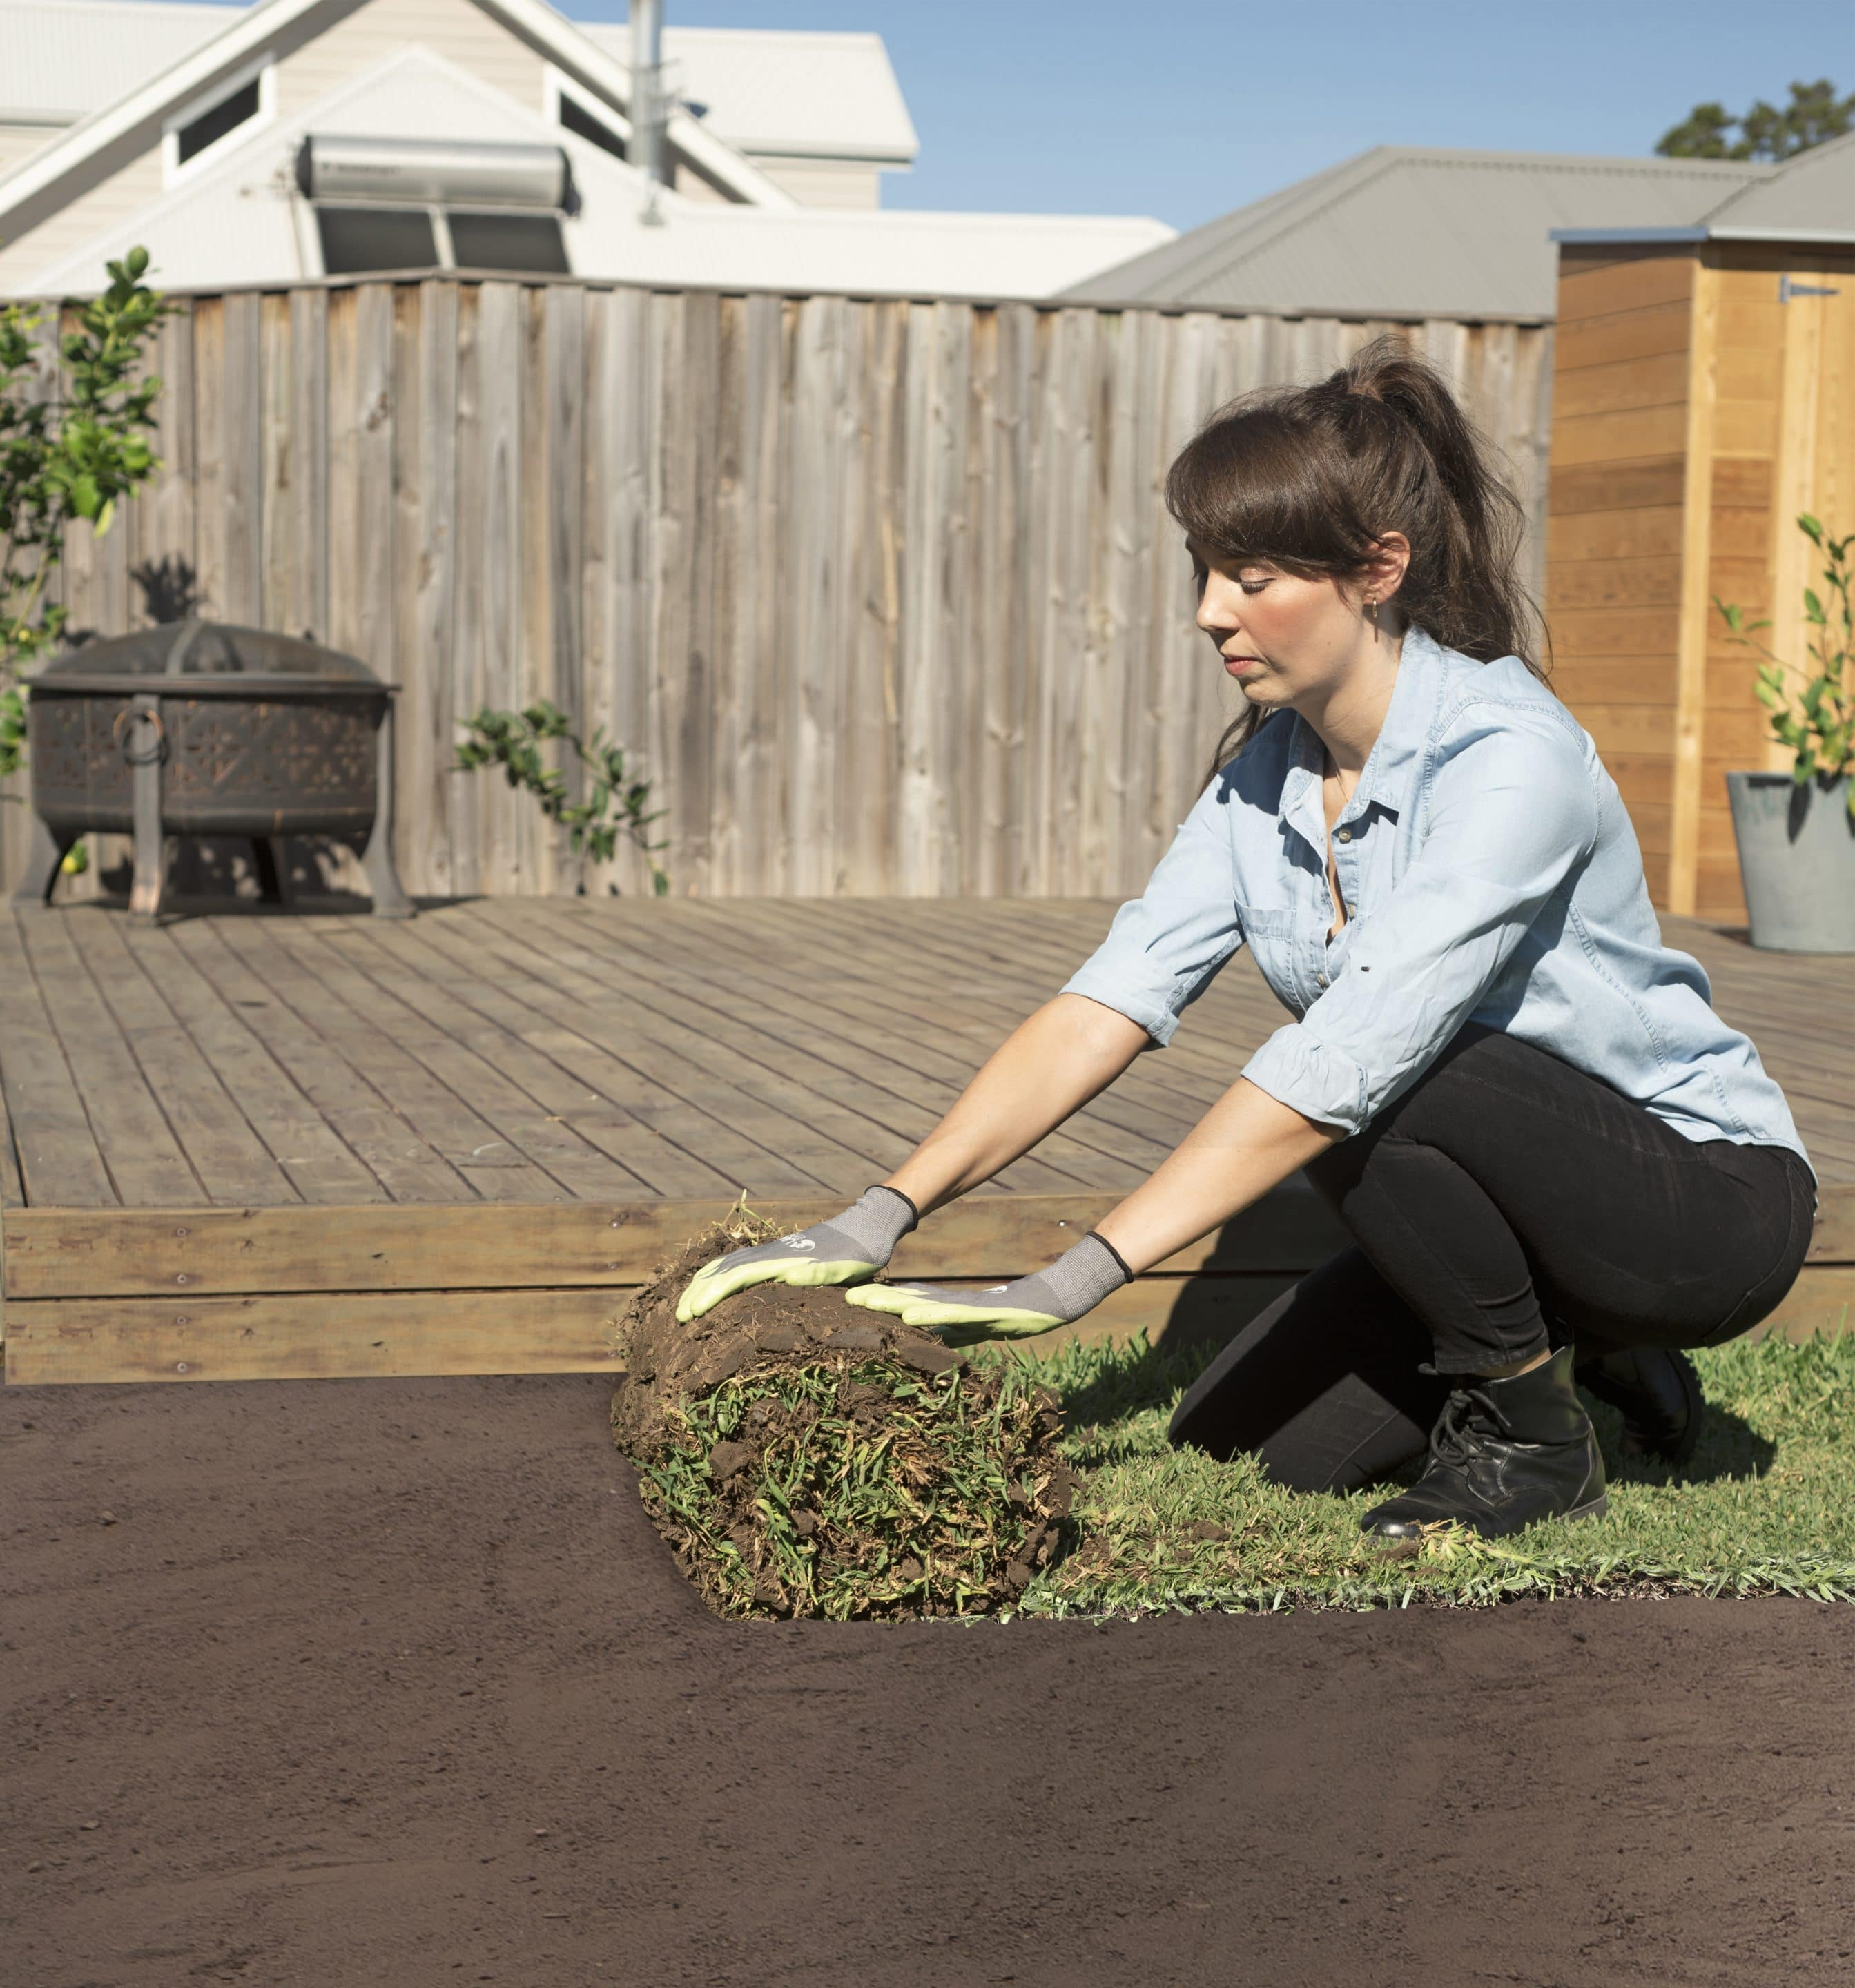 Woman Rolling a new lawn